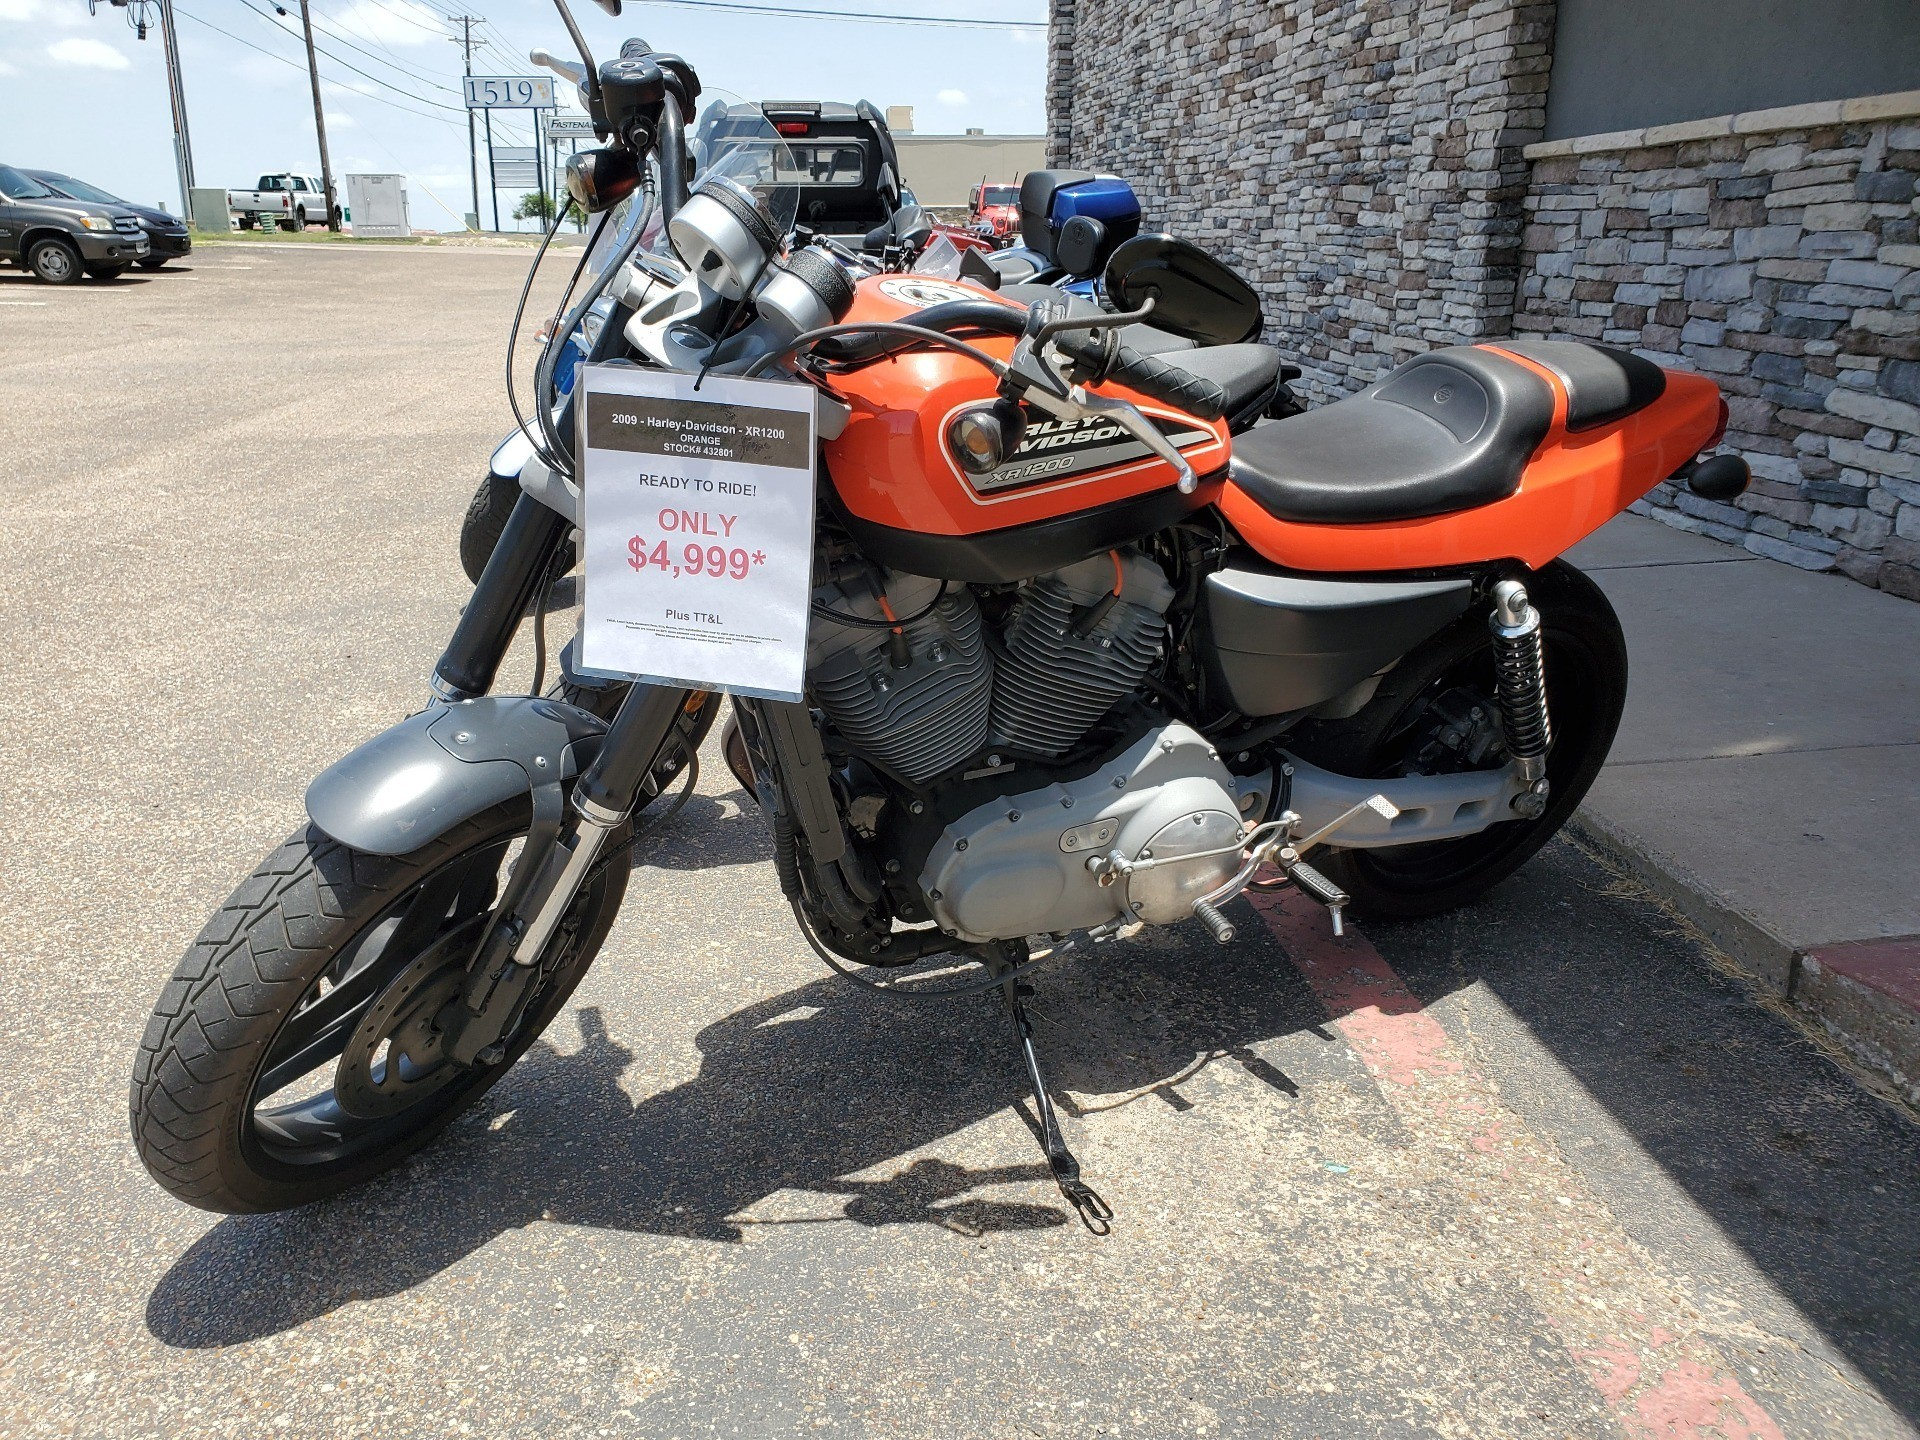 2009 Harley-Davidson XR1200 in Waco, Texas - Photo 2